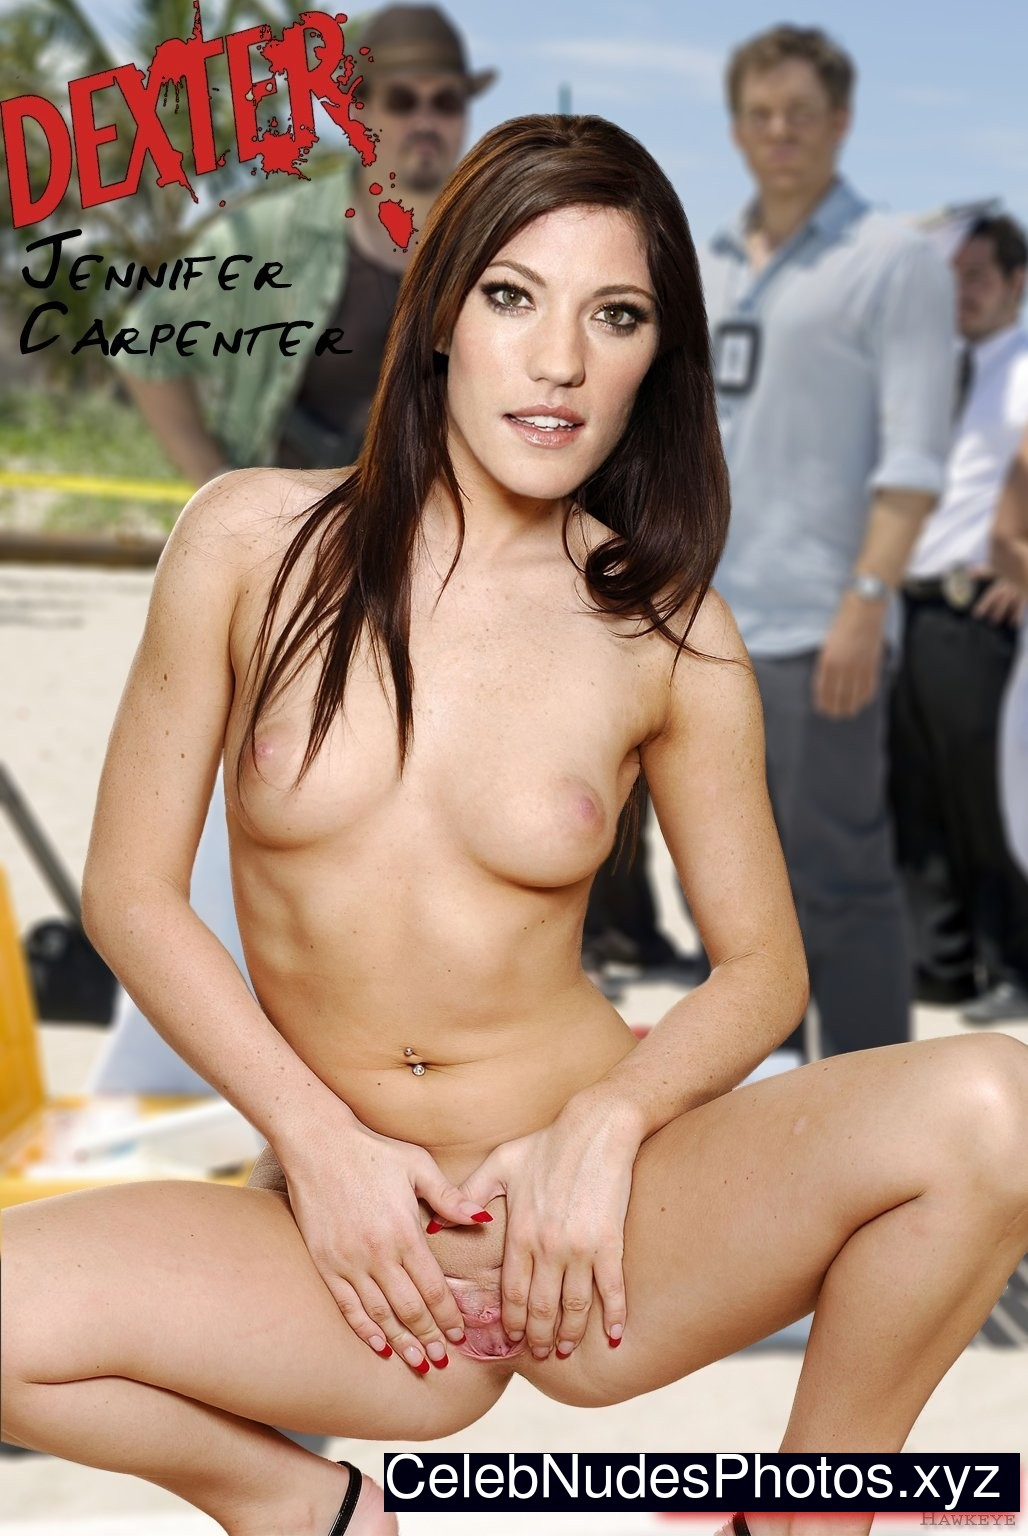 With you Jennifer carpenter real nude apologise, but